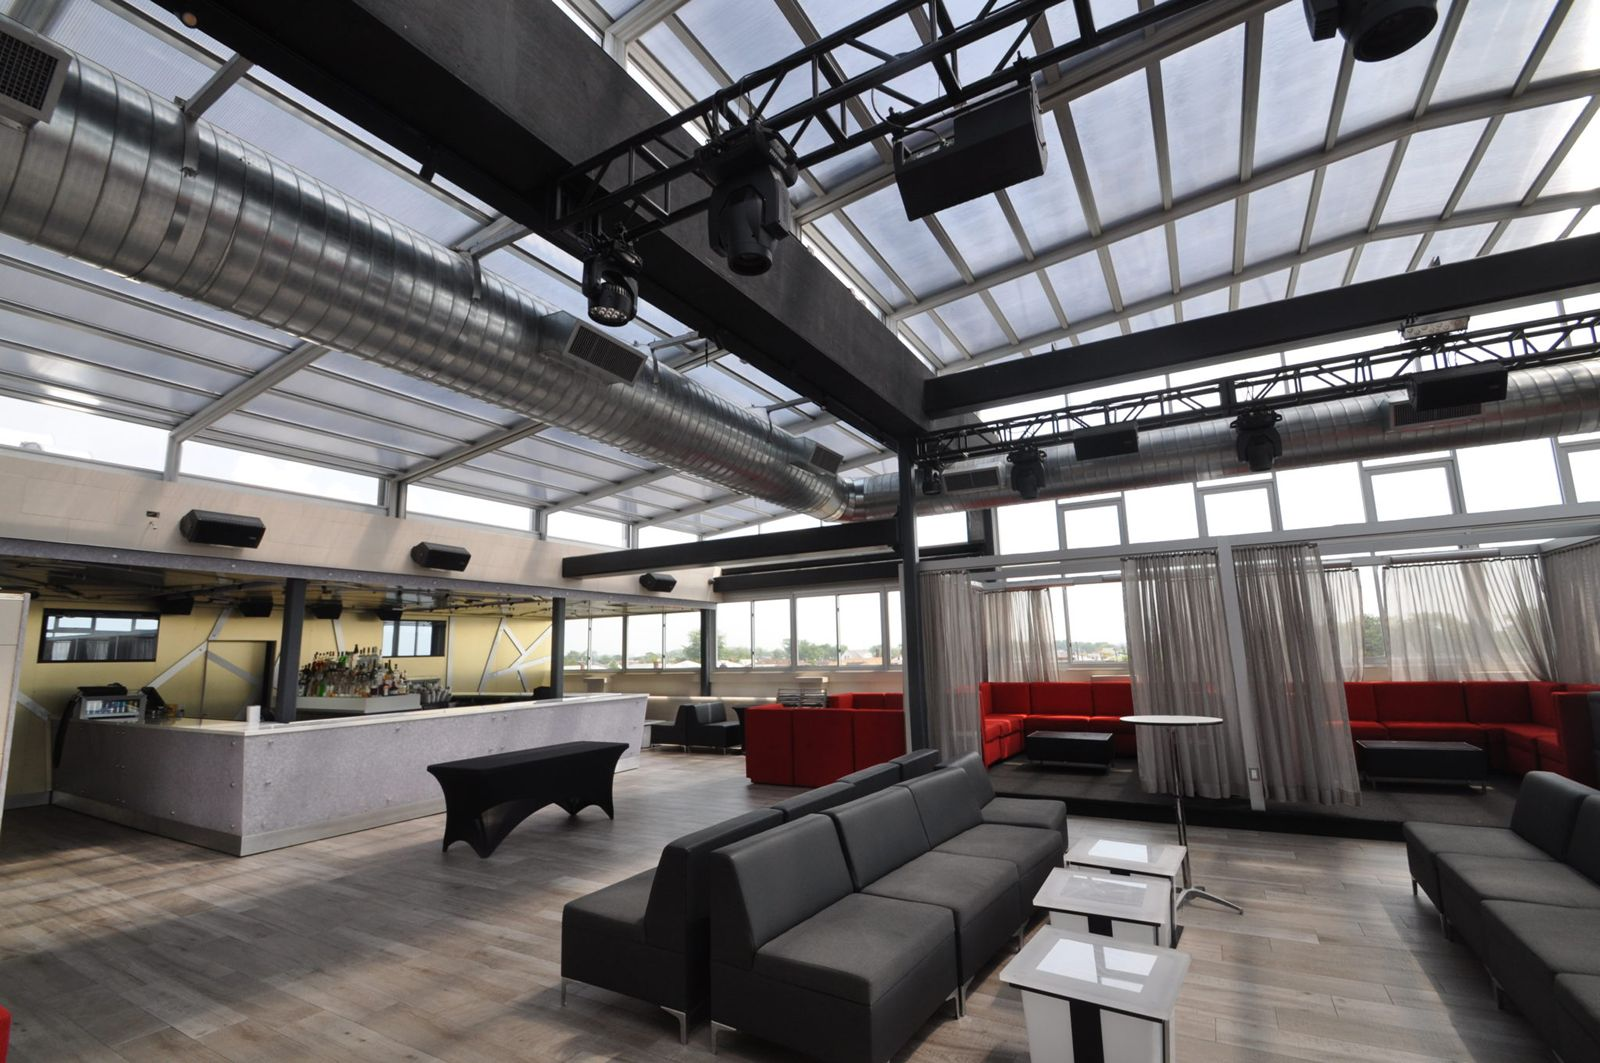 Roll-A-Cover's Retractable Roof Enclosures in the Boroughs